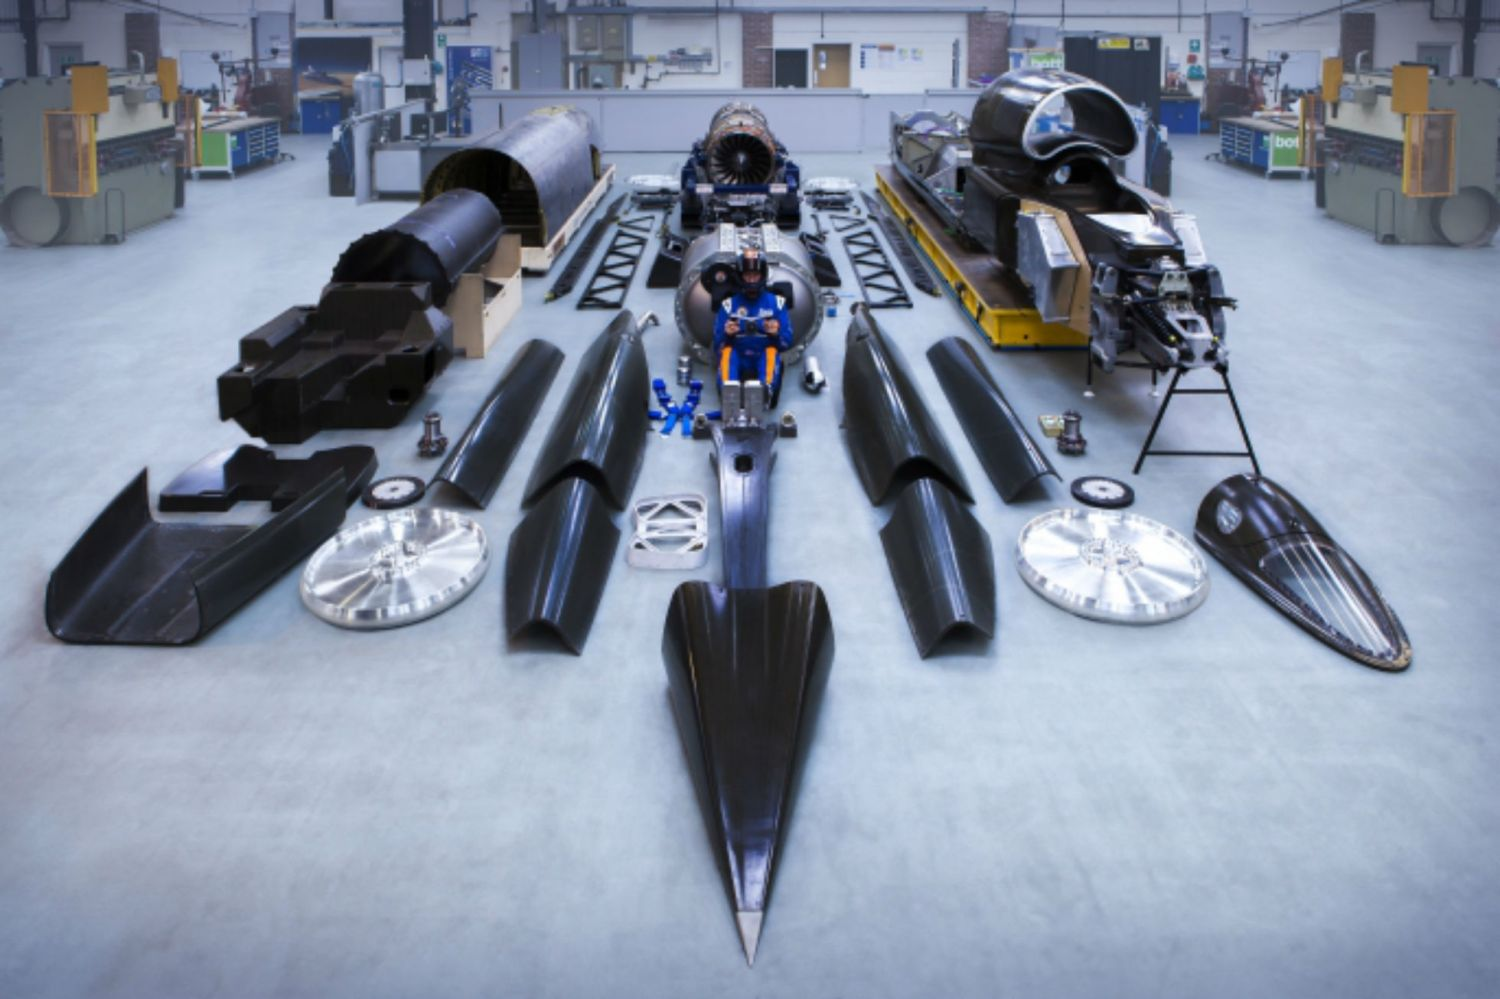 Revealed: the parts that go into the 1,000mph Bloodhound SSC